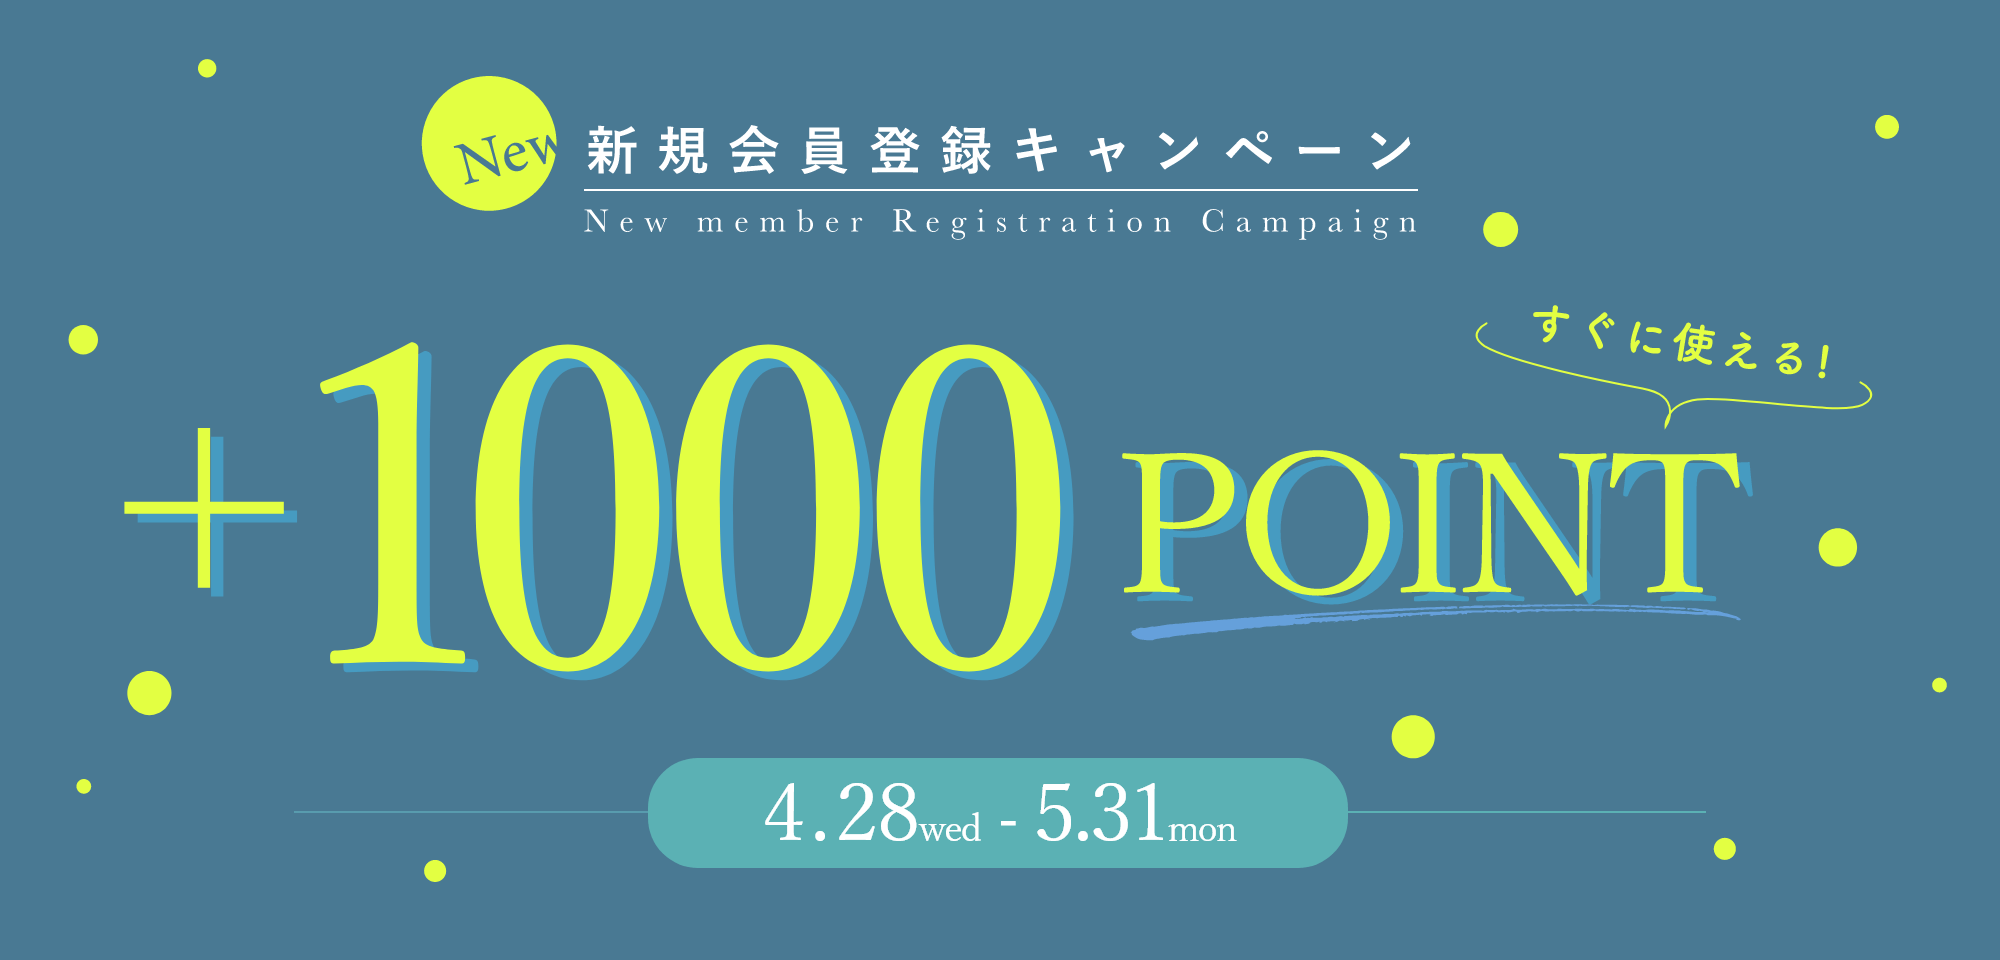 New 新規会員登録キャンペーン New member Registration Campaign +1000POINT すぐに使える!